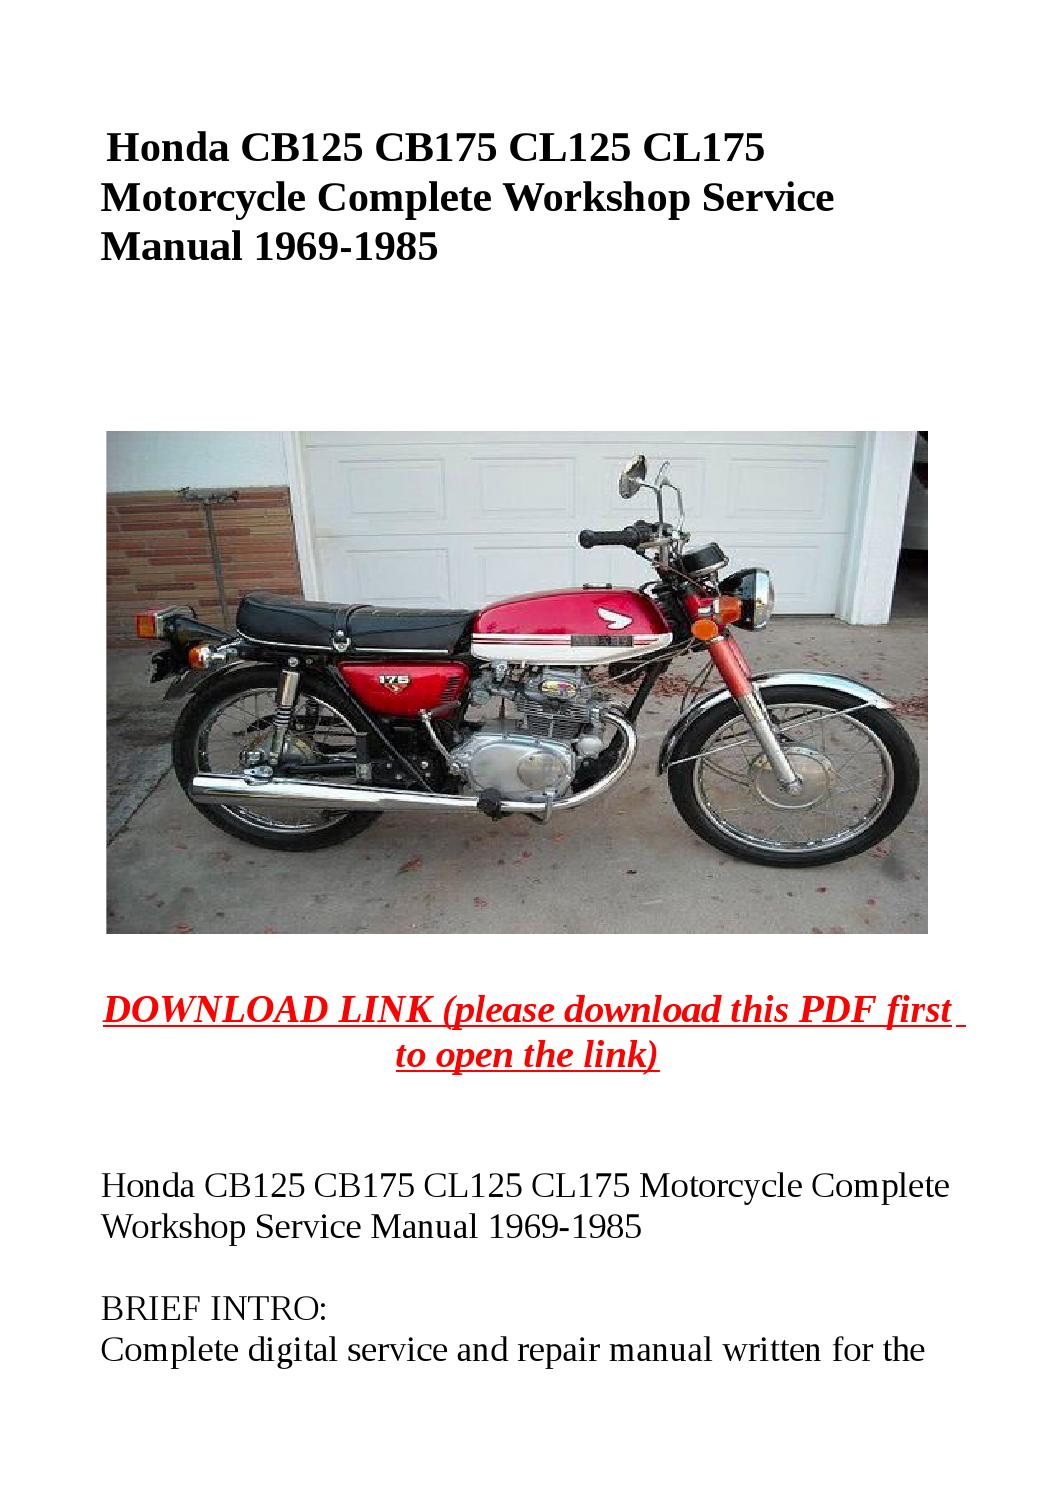 hight resolution of honda cb125 cb175 cl125 cl175 motorcycle complete workshop service manual 1969 1985